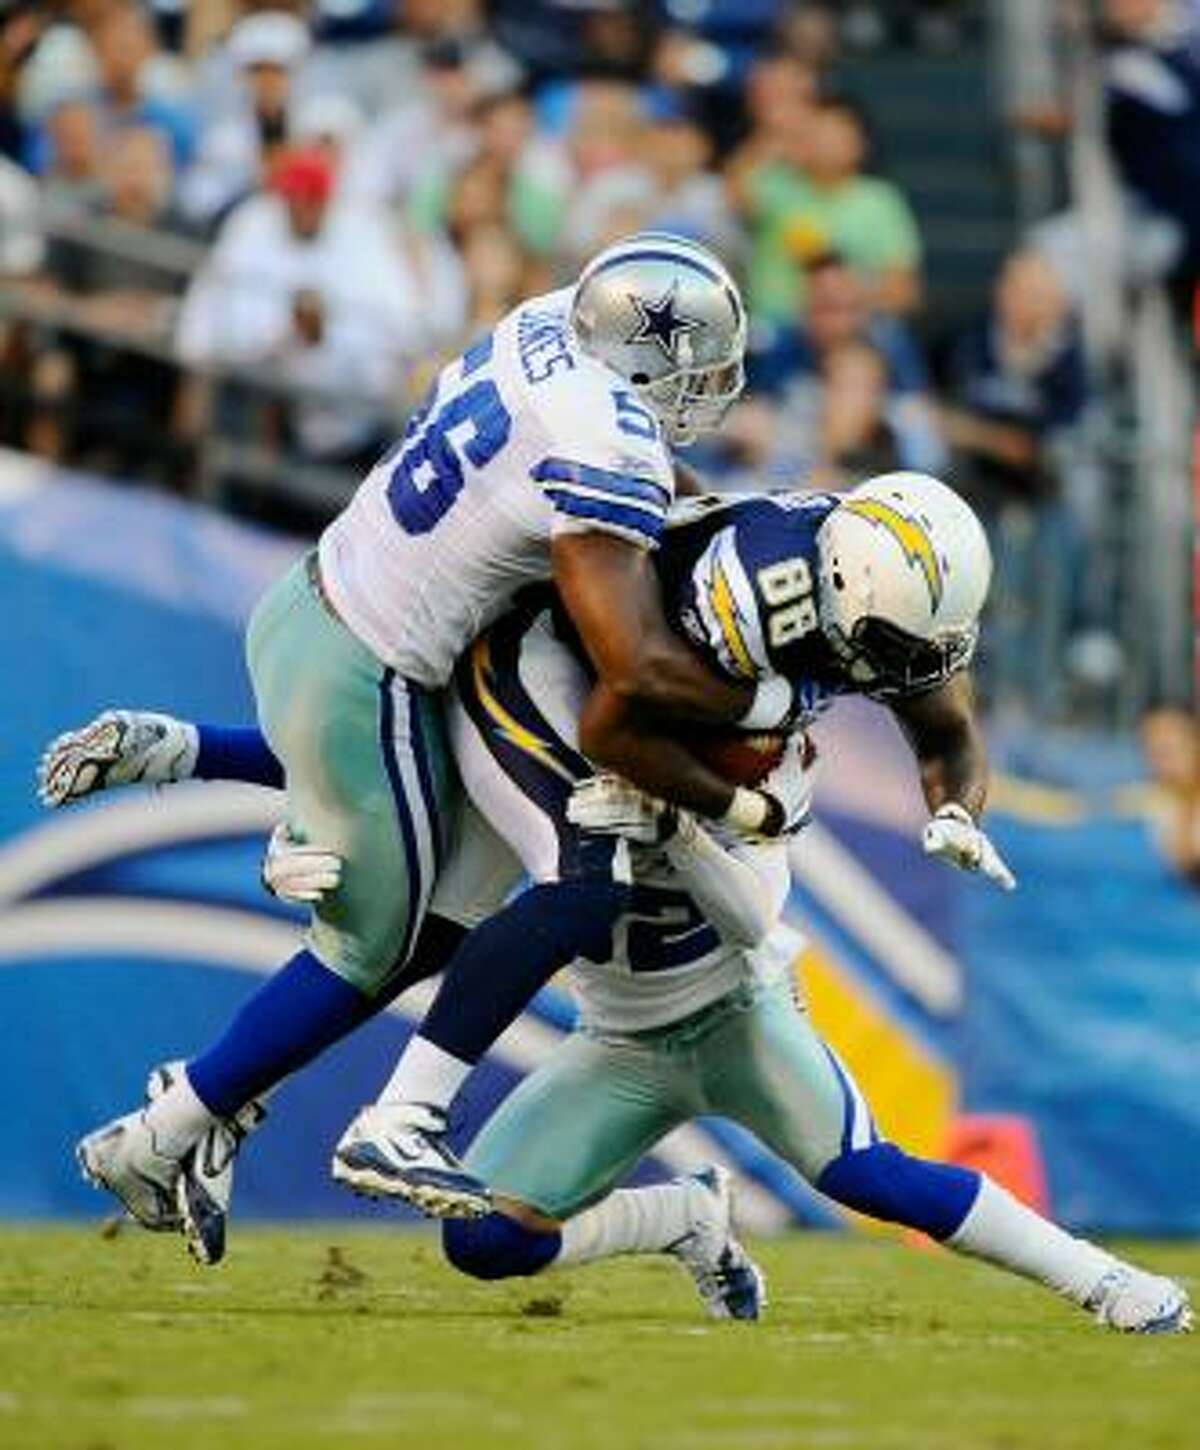 Chargers fullback Kris Wilson is tackled by Cowboys linebacker Bradie James after catching a pass.